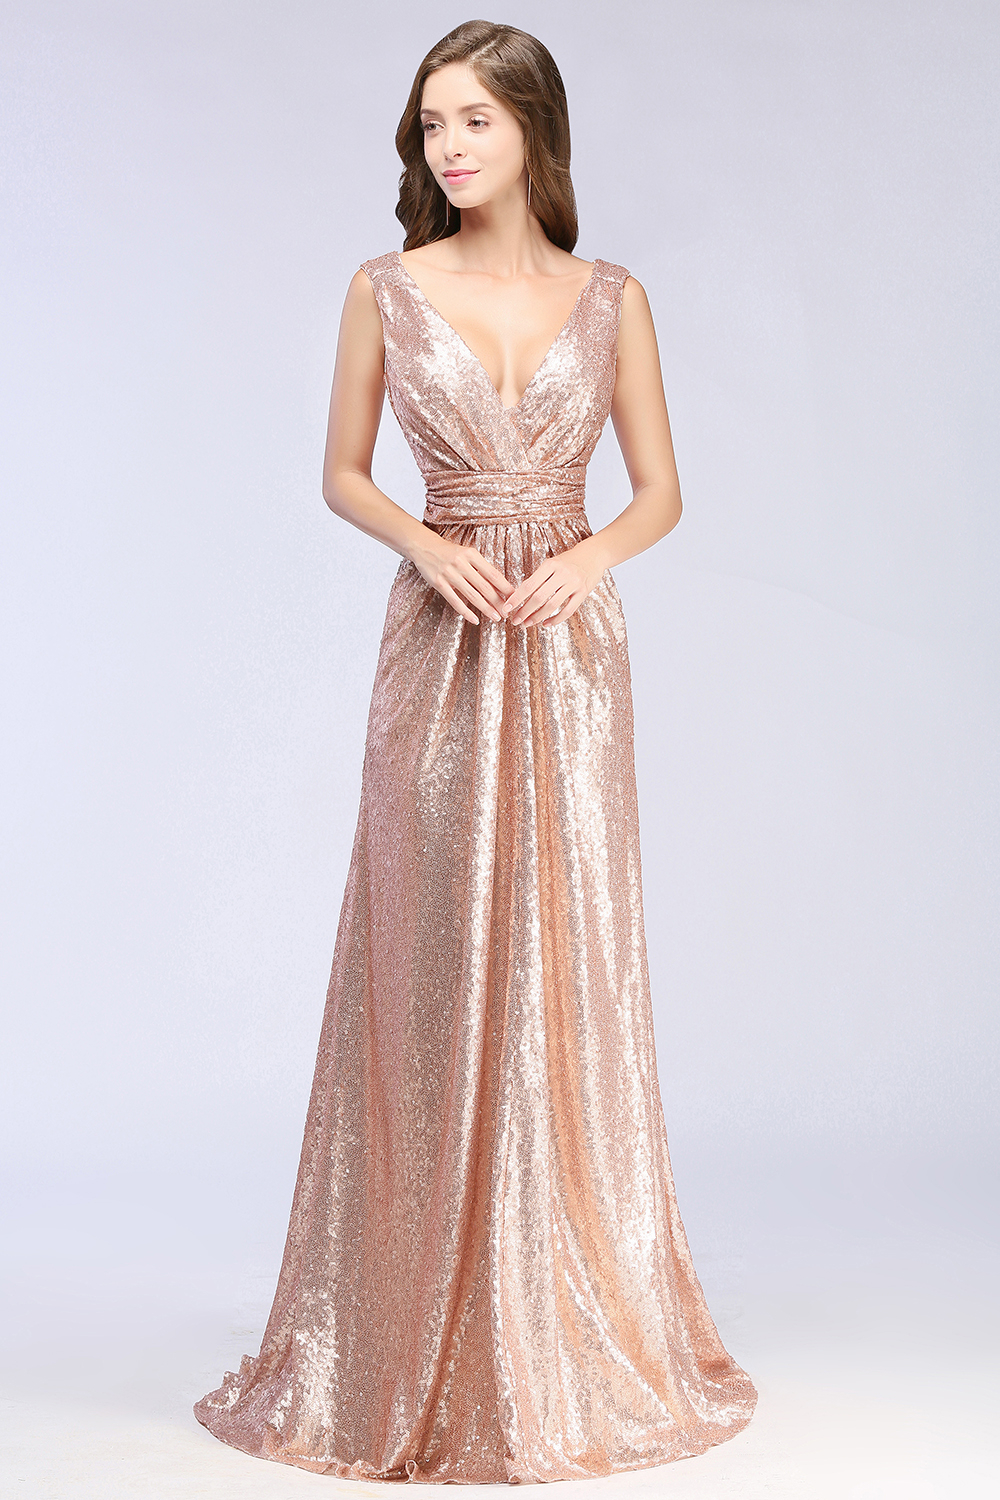 Babyonline-V-Shinny-Rose-Gold-Sequin-201